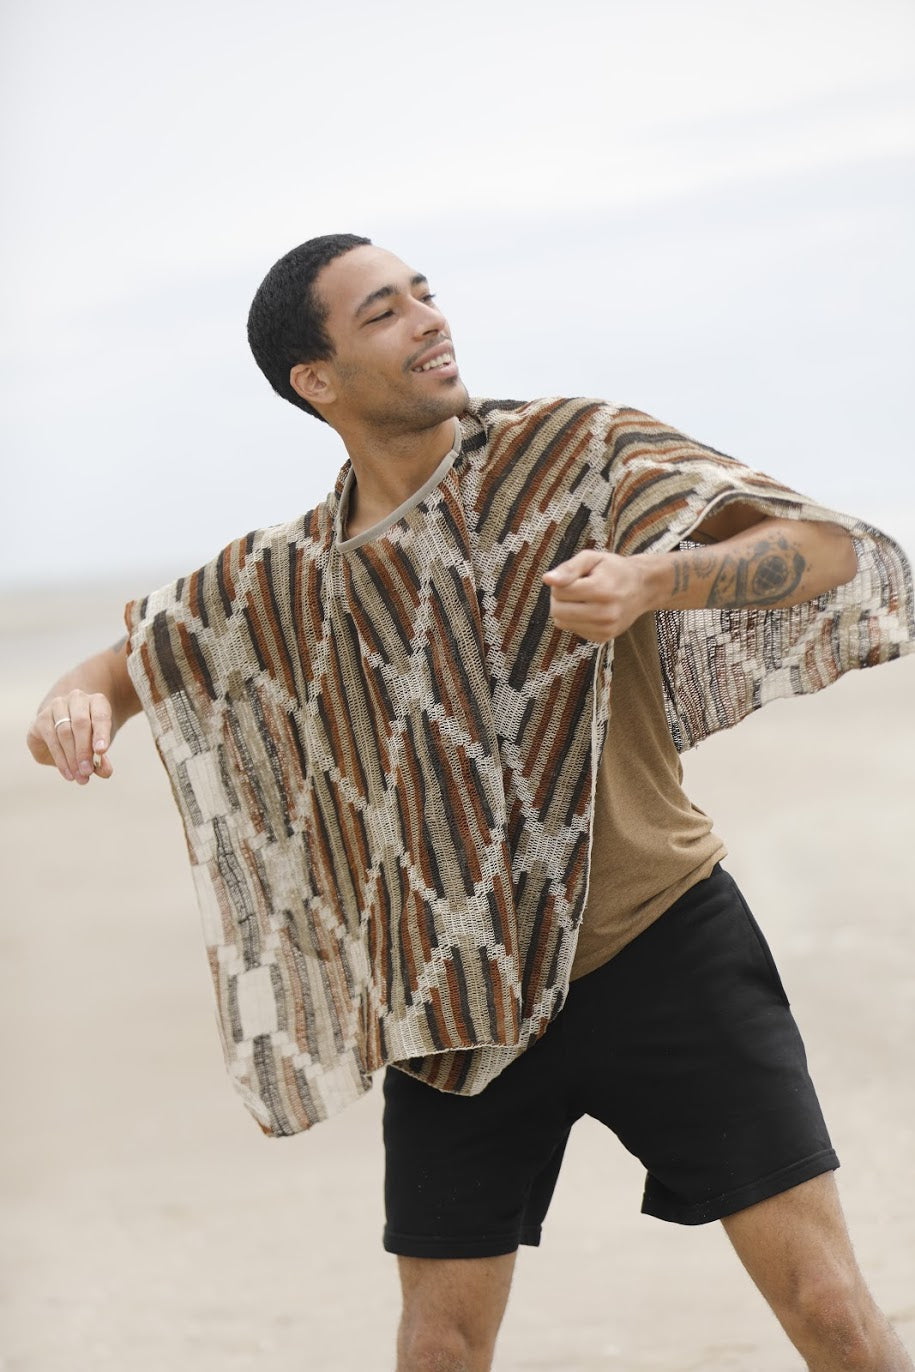 Cream Chaguar Poncho with Multicolored Design Details.